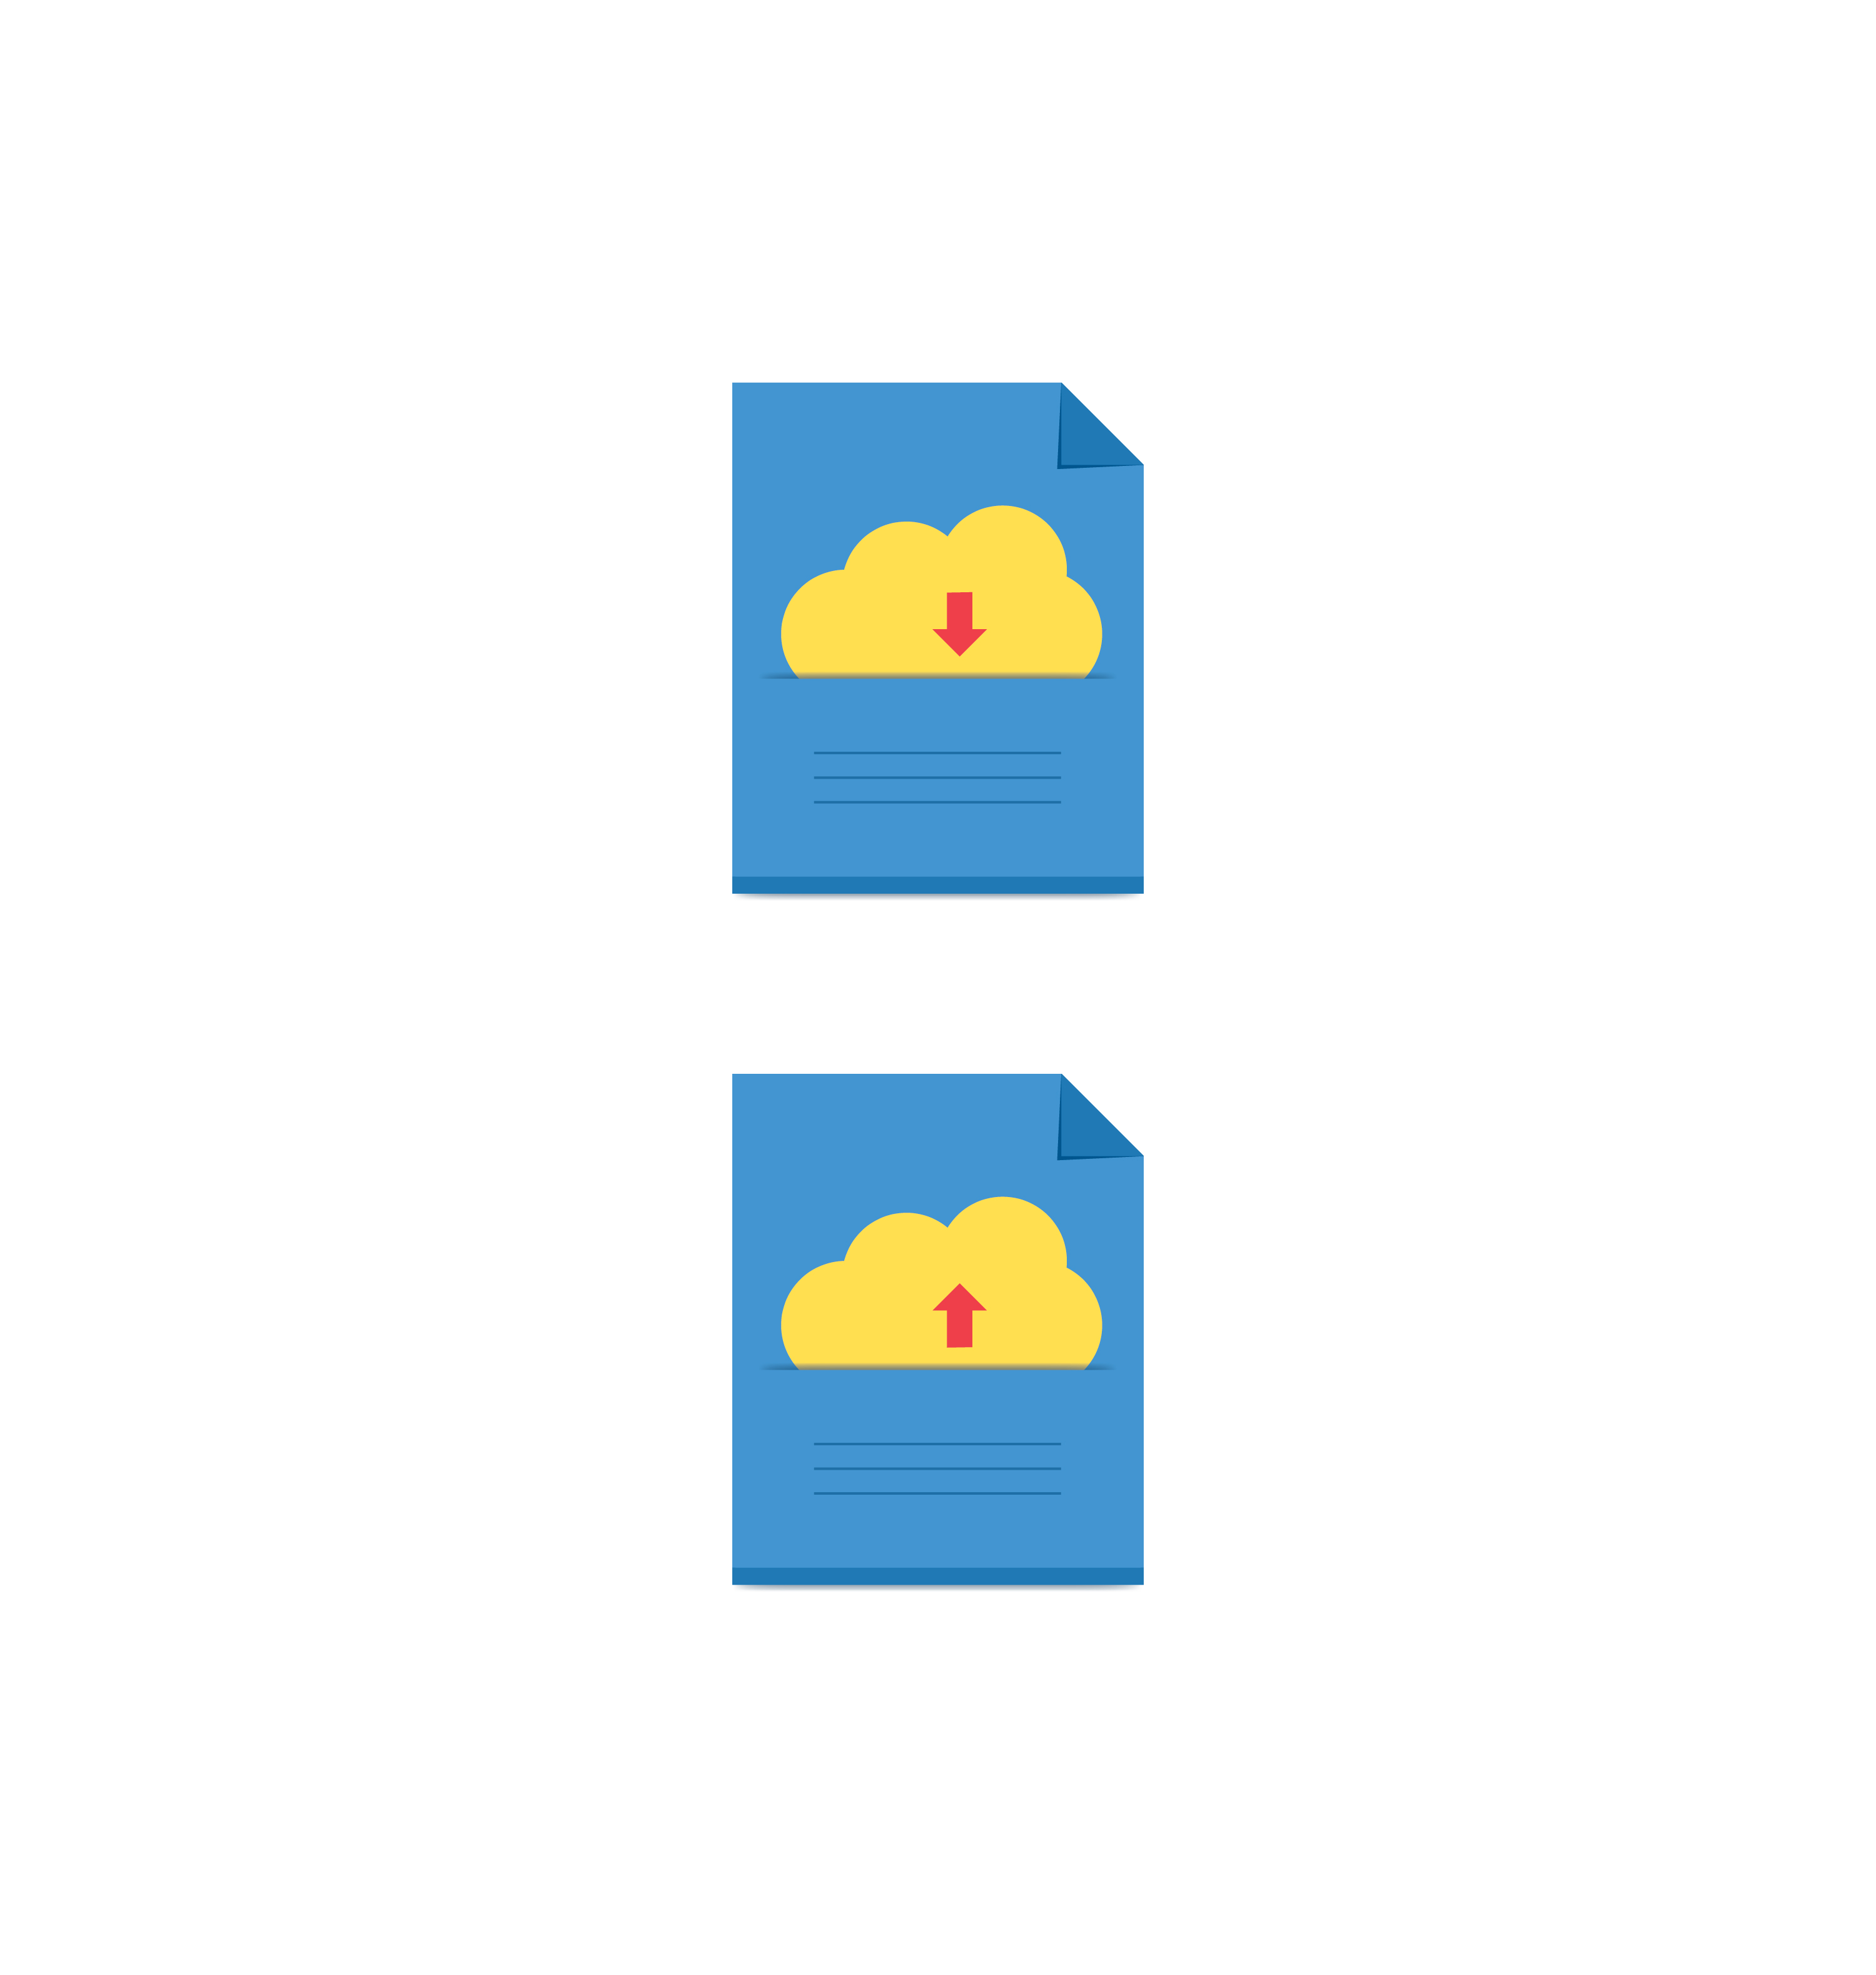 cloud download and upload icon 11